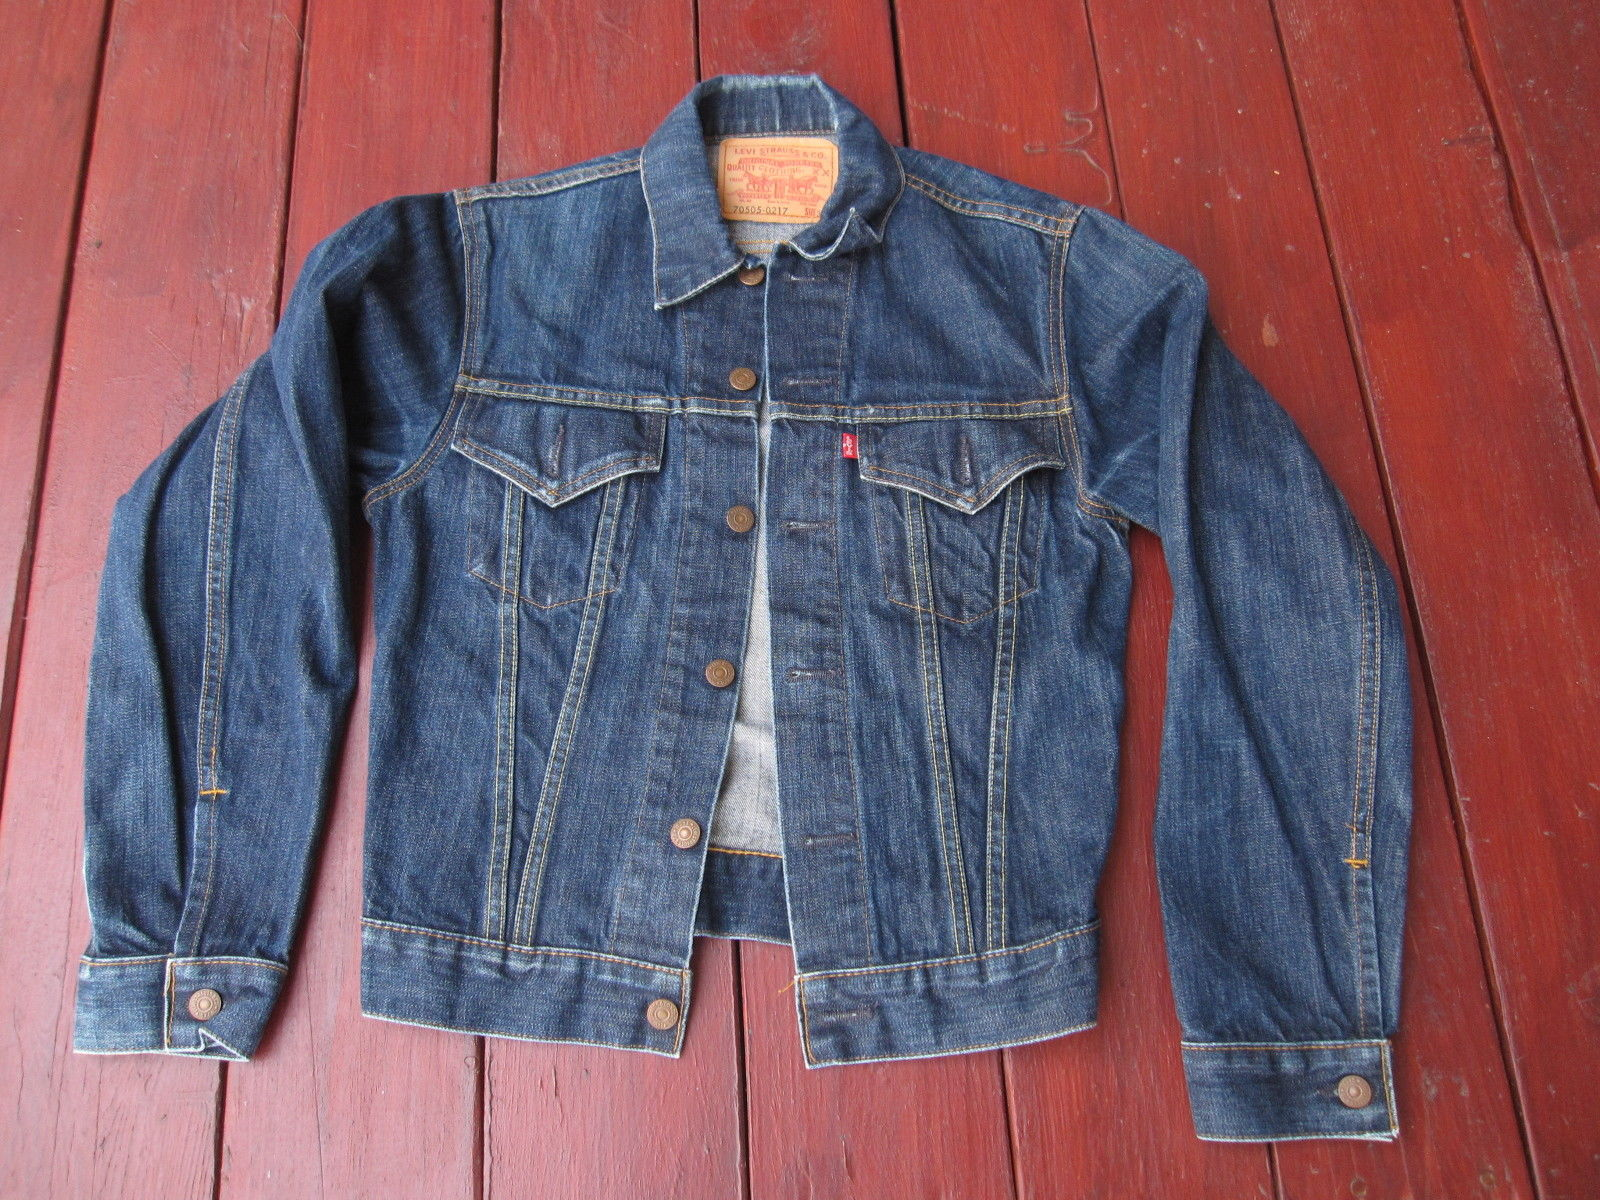 A Guide To Buying Vintage Levi S Trucker Jackets On Ebay